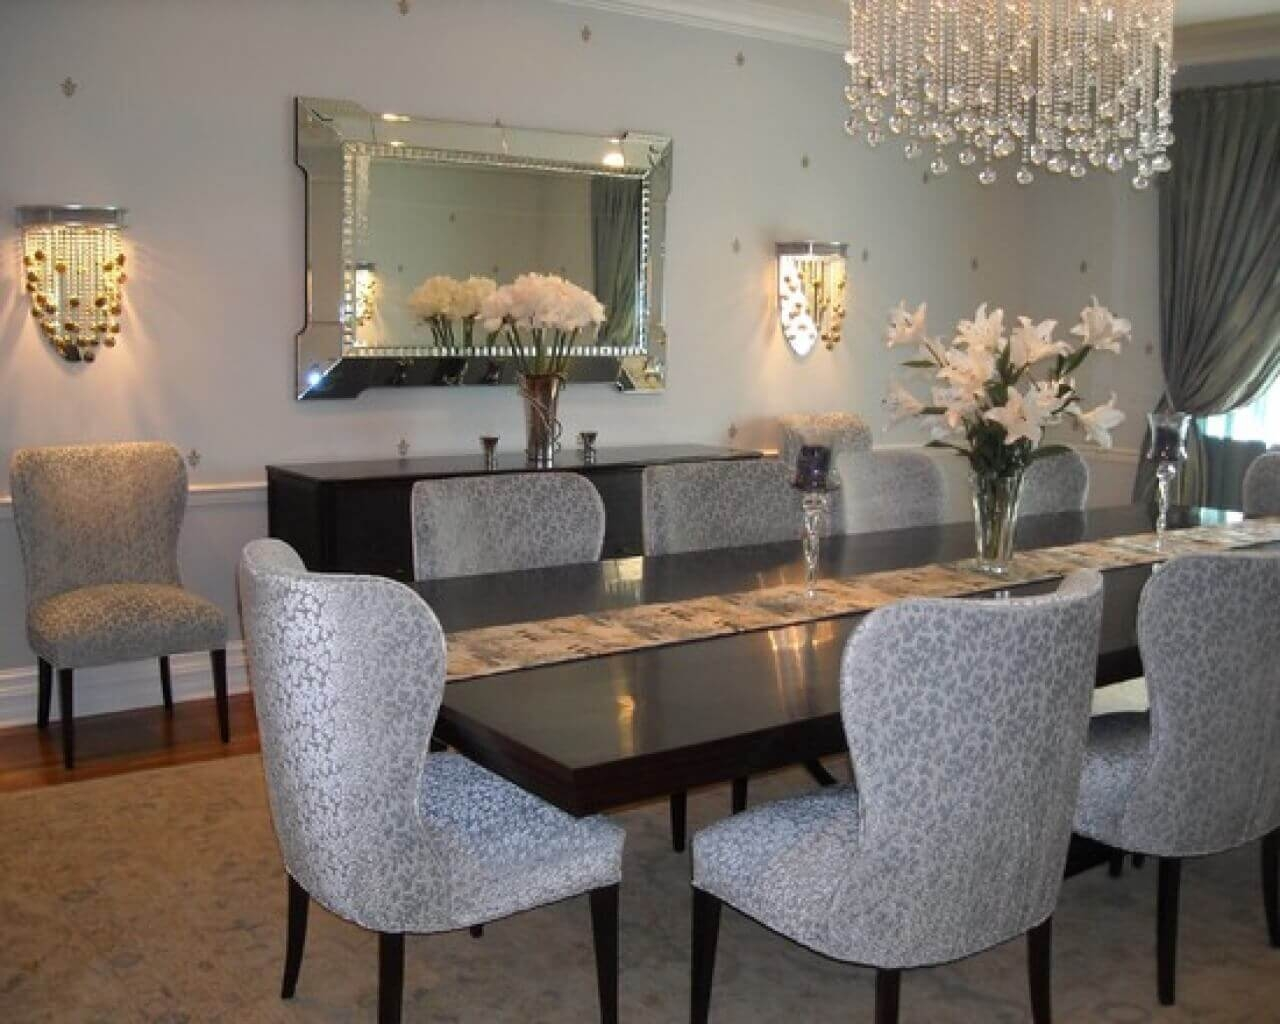 Ways To Design A Small Dining Area Within Your Budget